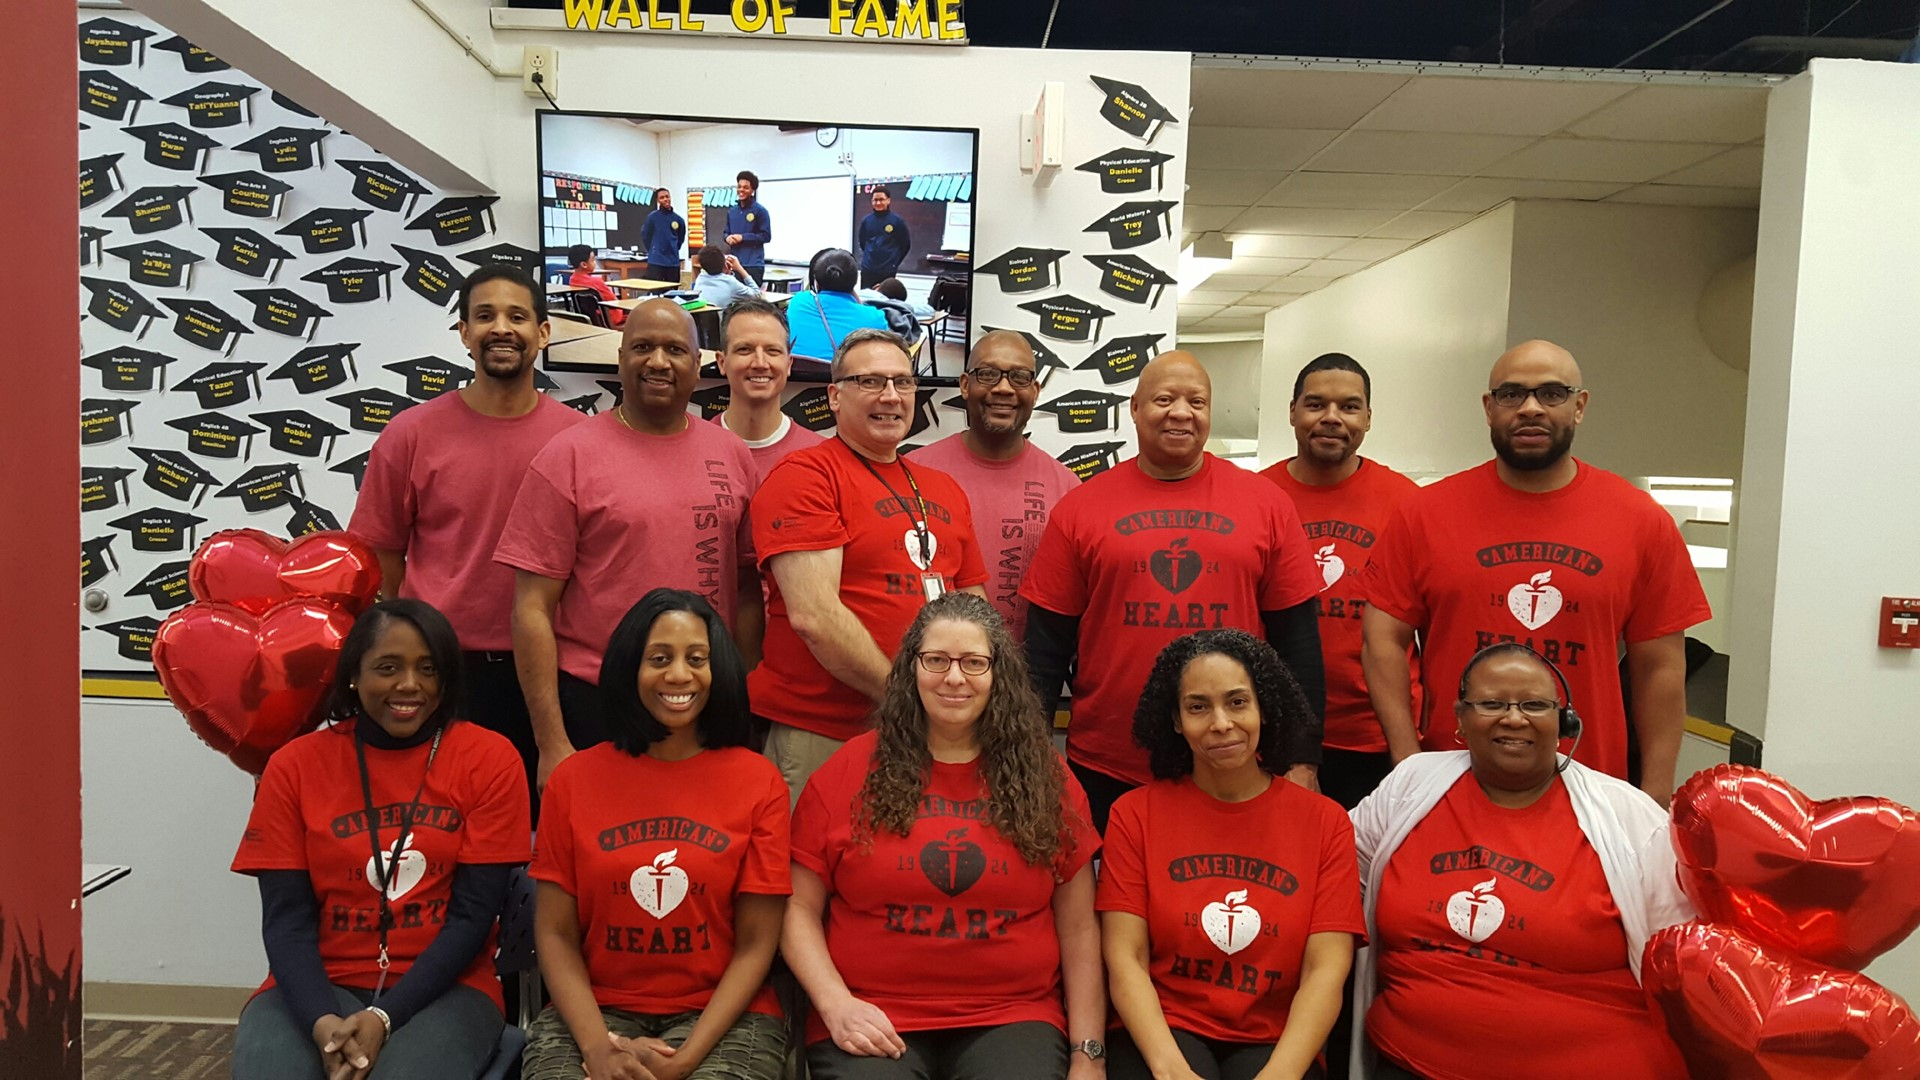 Staff members from the Delisle Educational Options Center support American Heart Association.